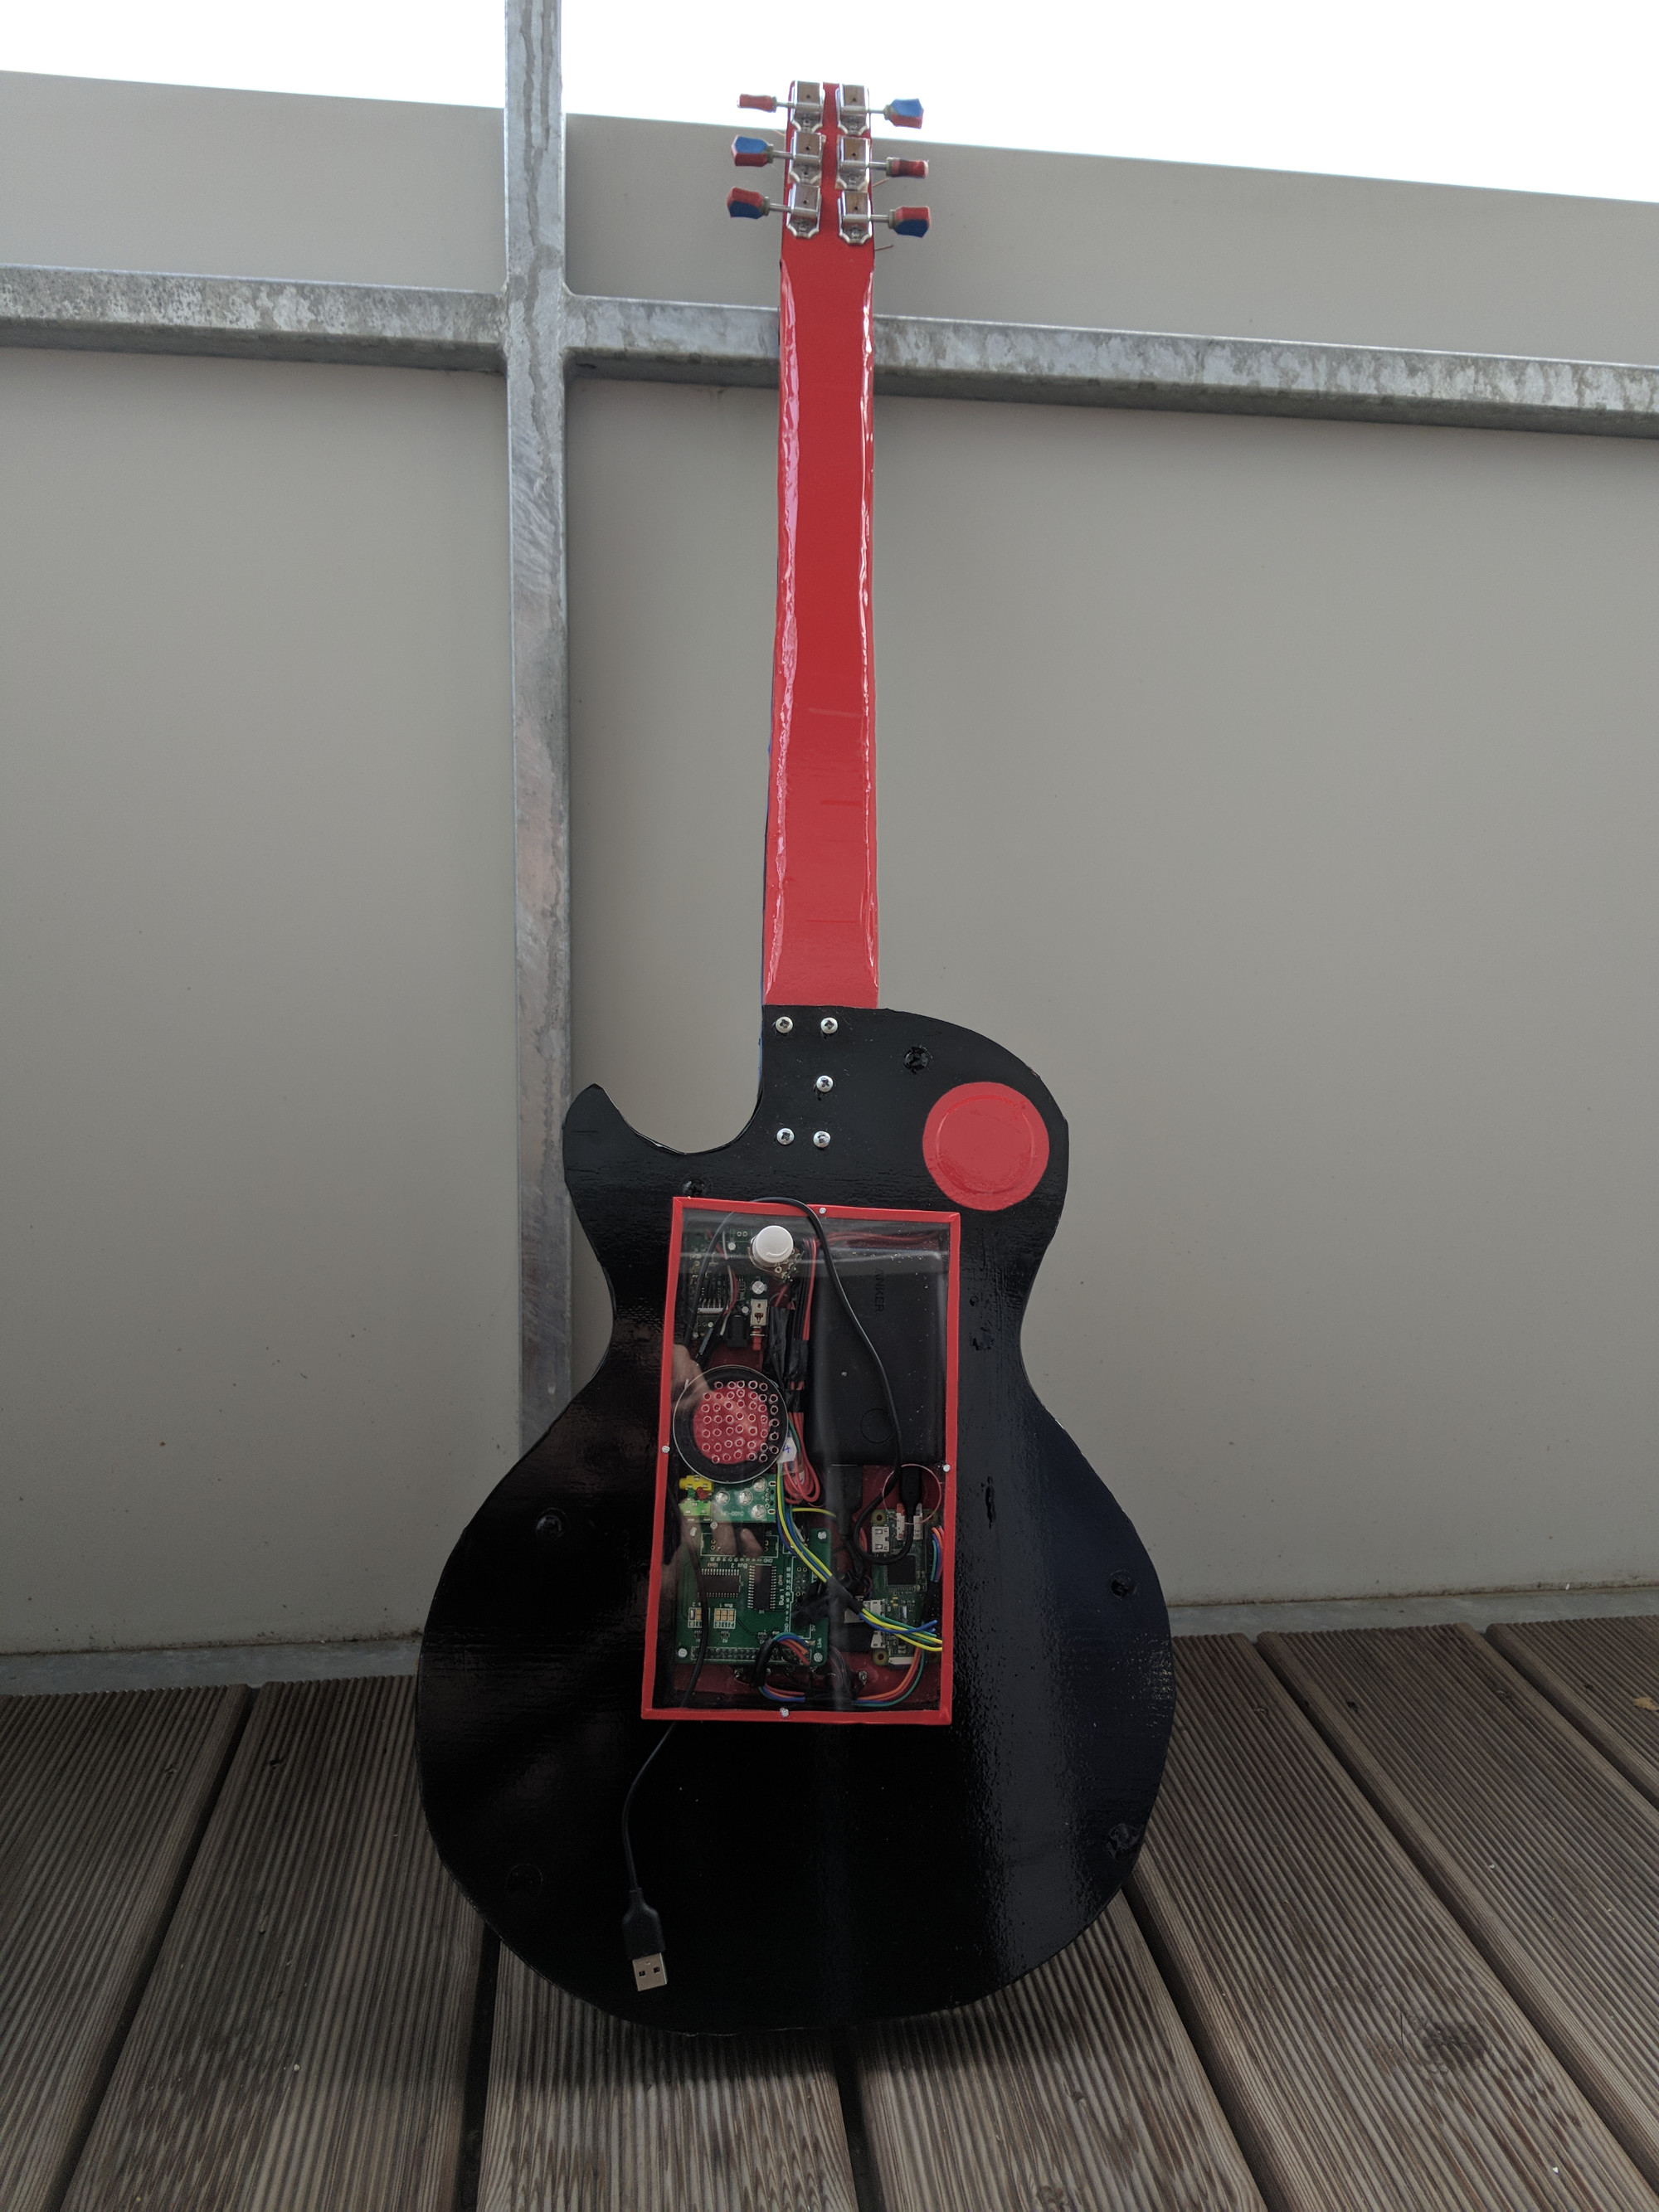 A rear view of the completed Puitar, showing the Pi Zero enclosed by a piece of Plexiglas